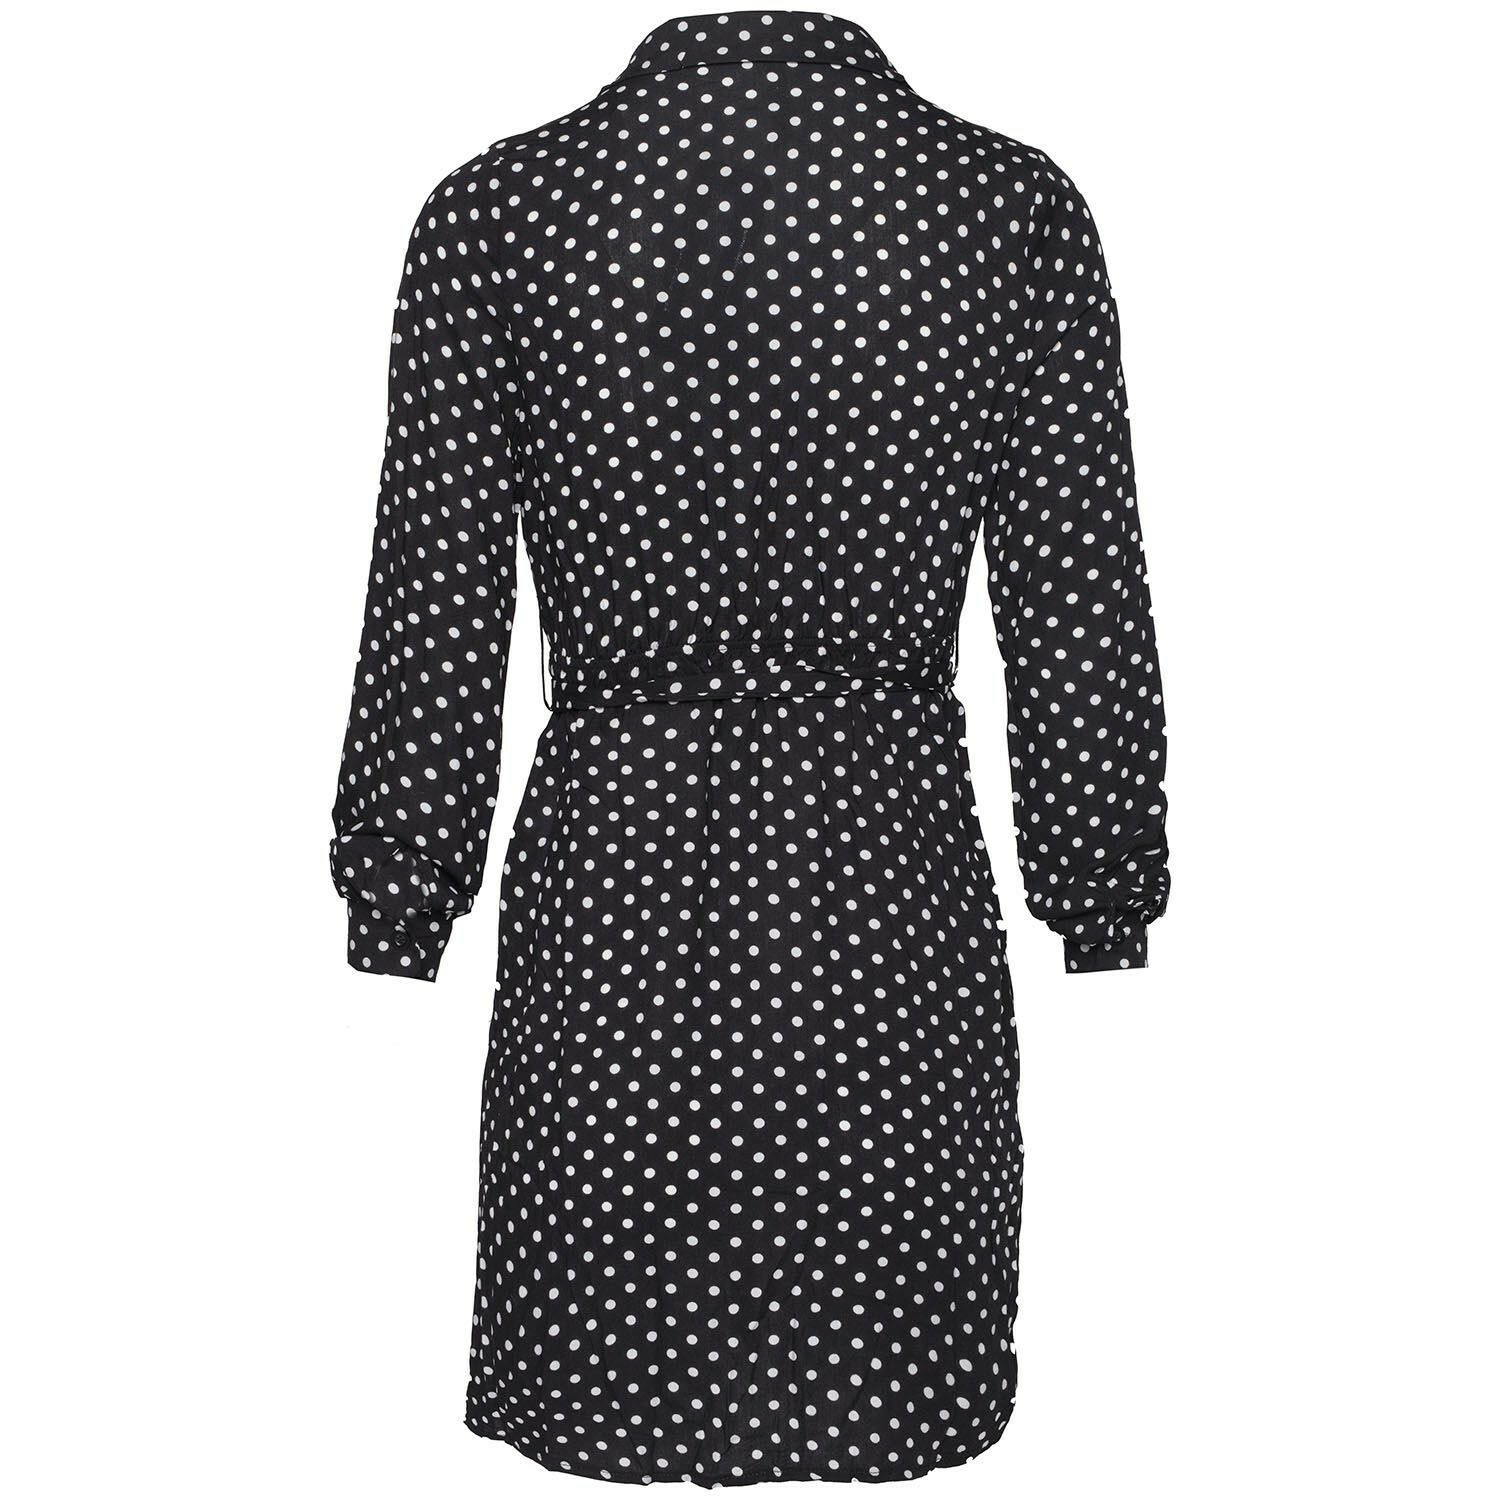 DARE TO DOT DRESS